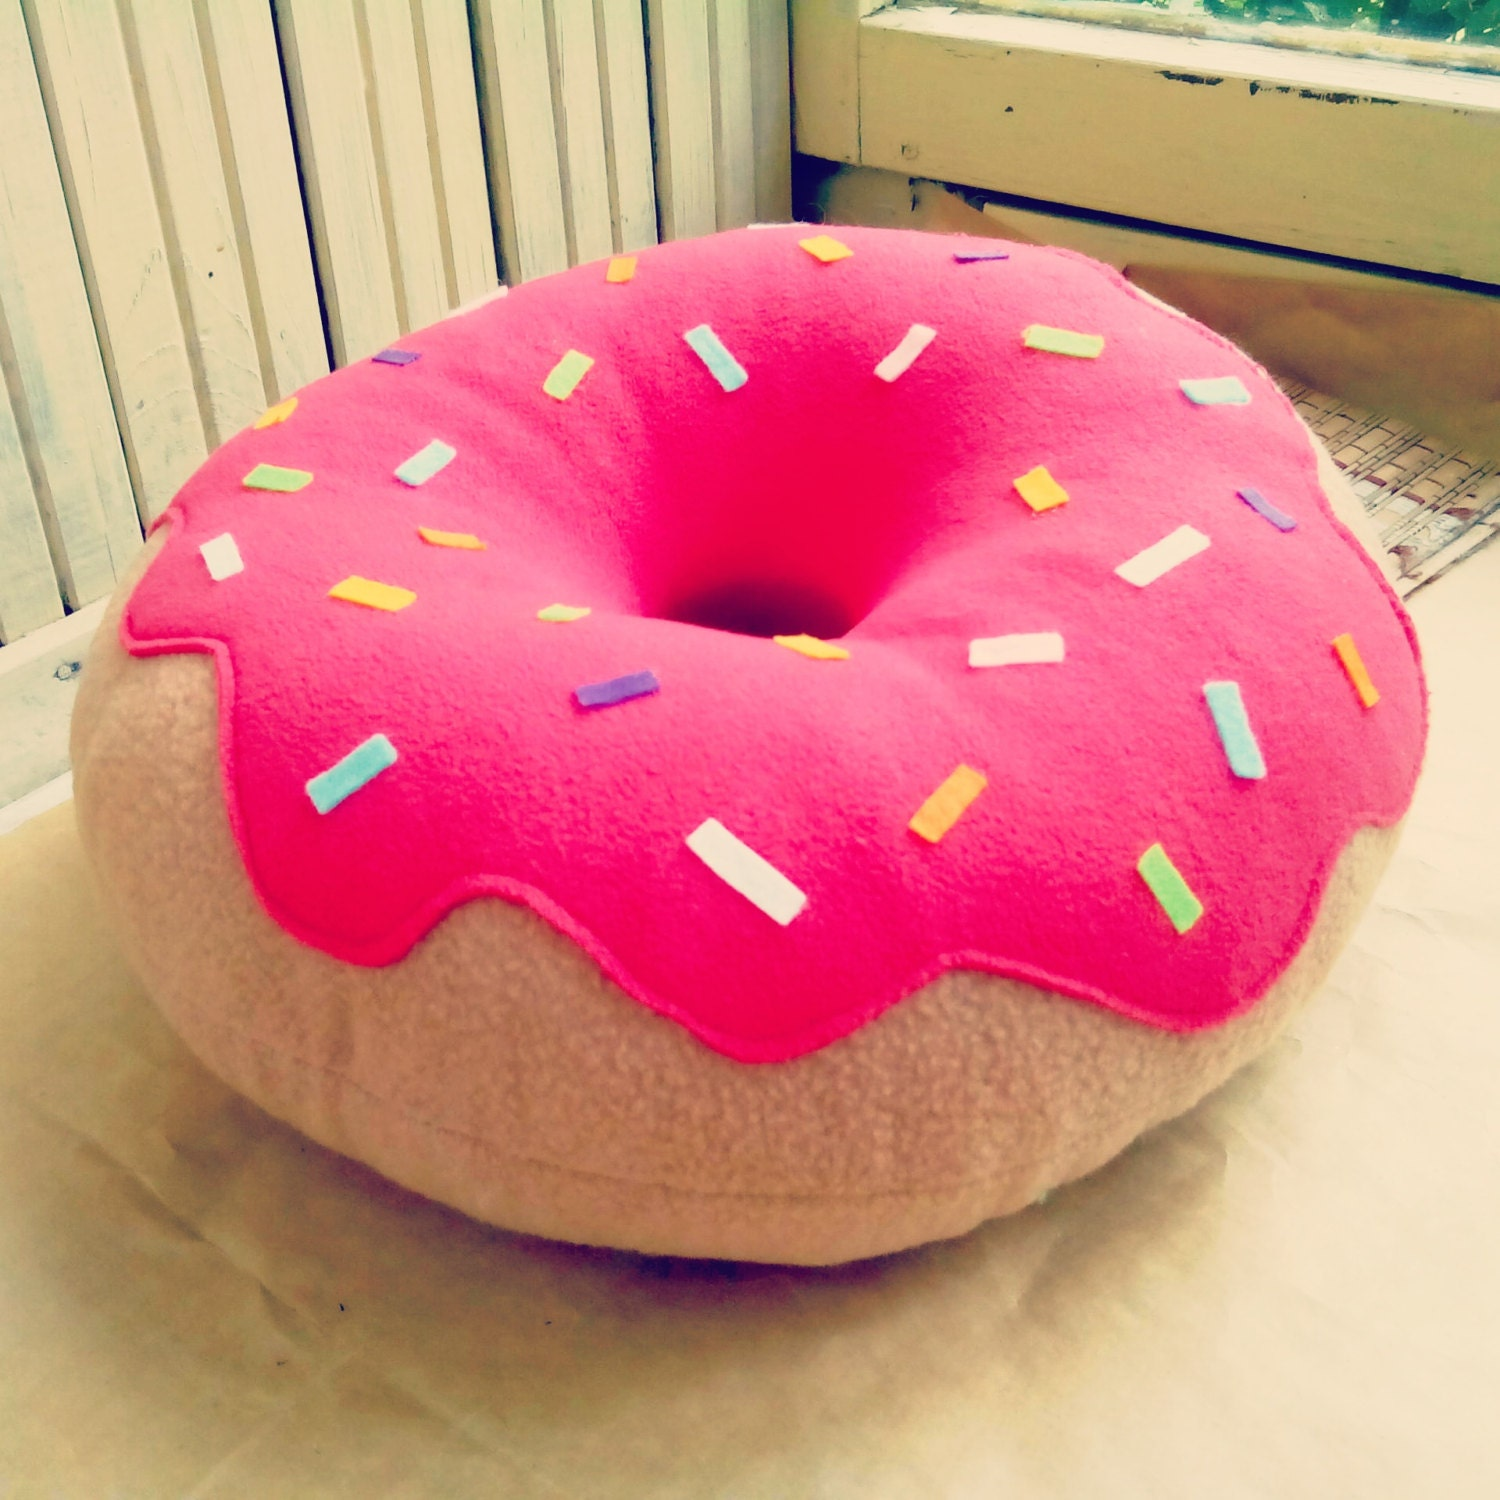 Donut Pillow Designer Pillow Decorative Pillow Home